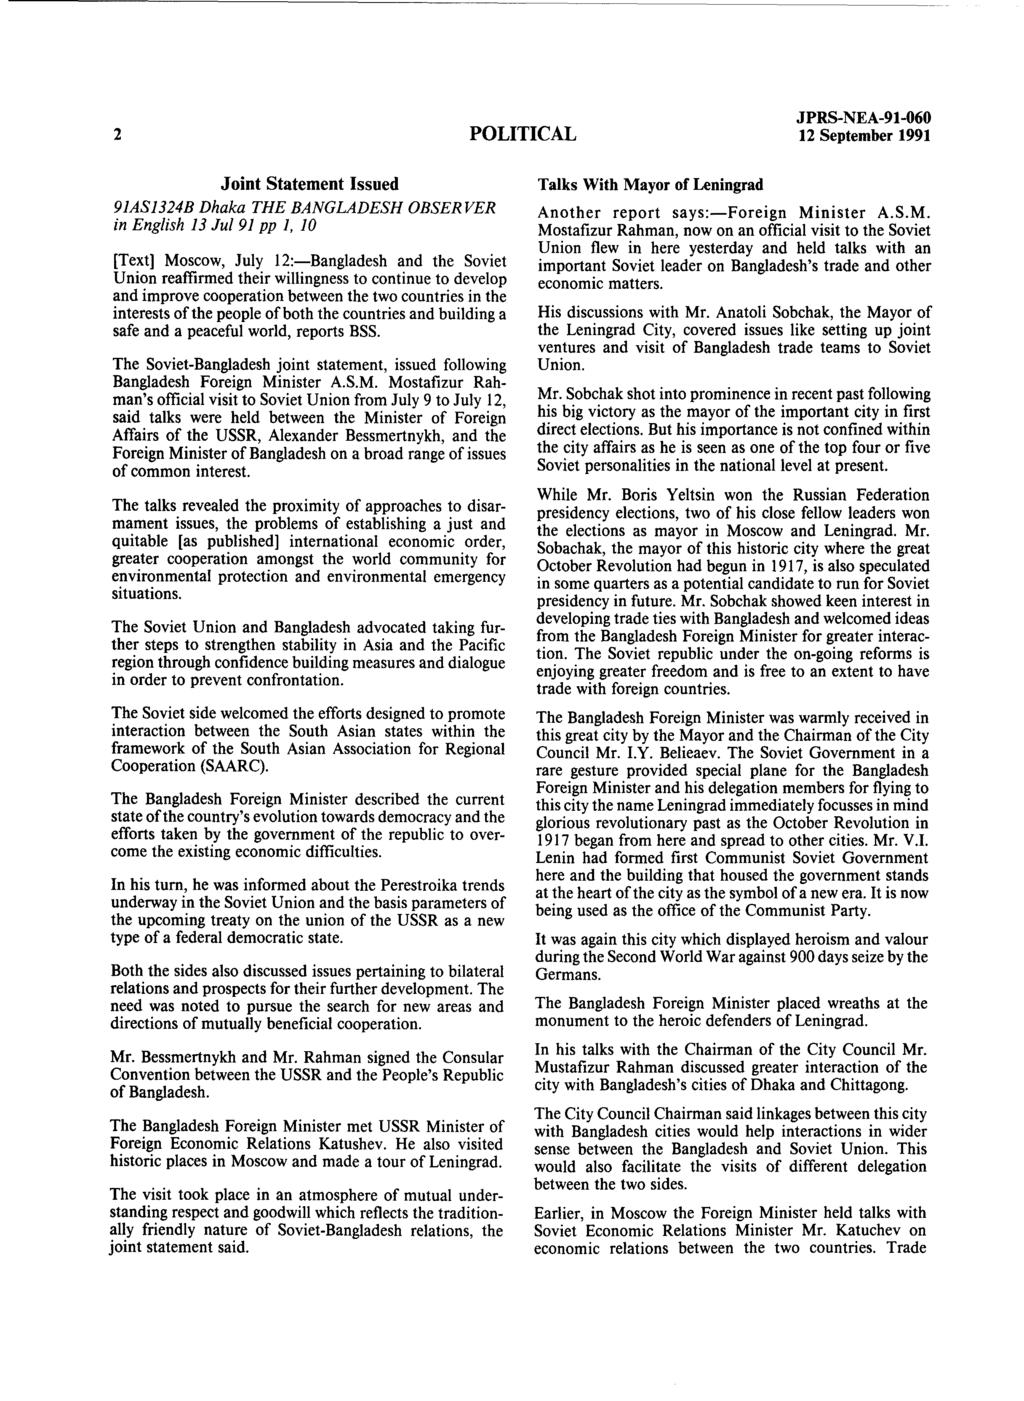 2 POLITICAL 12 September 1991 Joint Statement Issued 91AS1324B Dhaka THE BANGLADESH OBSERVER in English 13 Jul 91 pp 1, 10 [Text] Moscow, July 12:-Bangladesh and the Soviet Union reaffirmed their